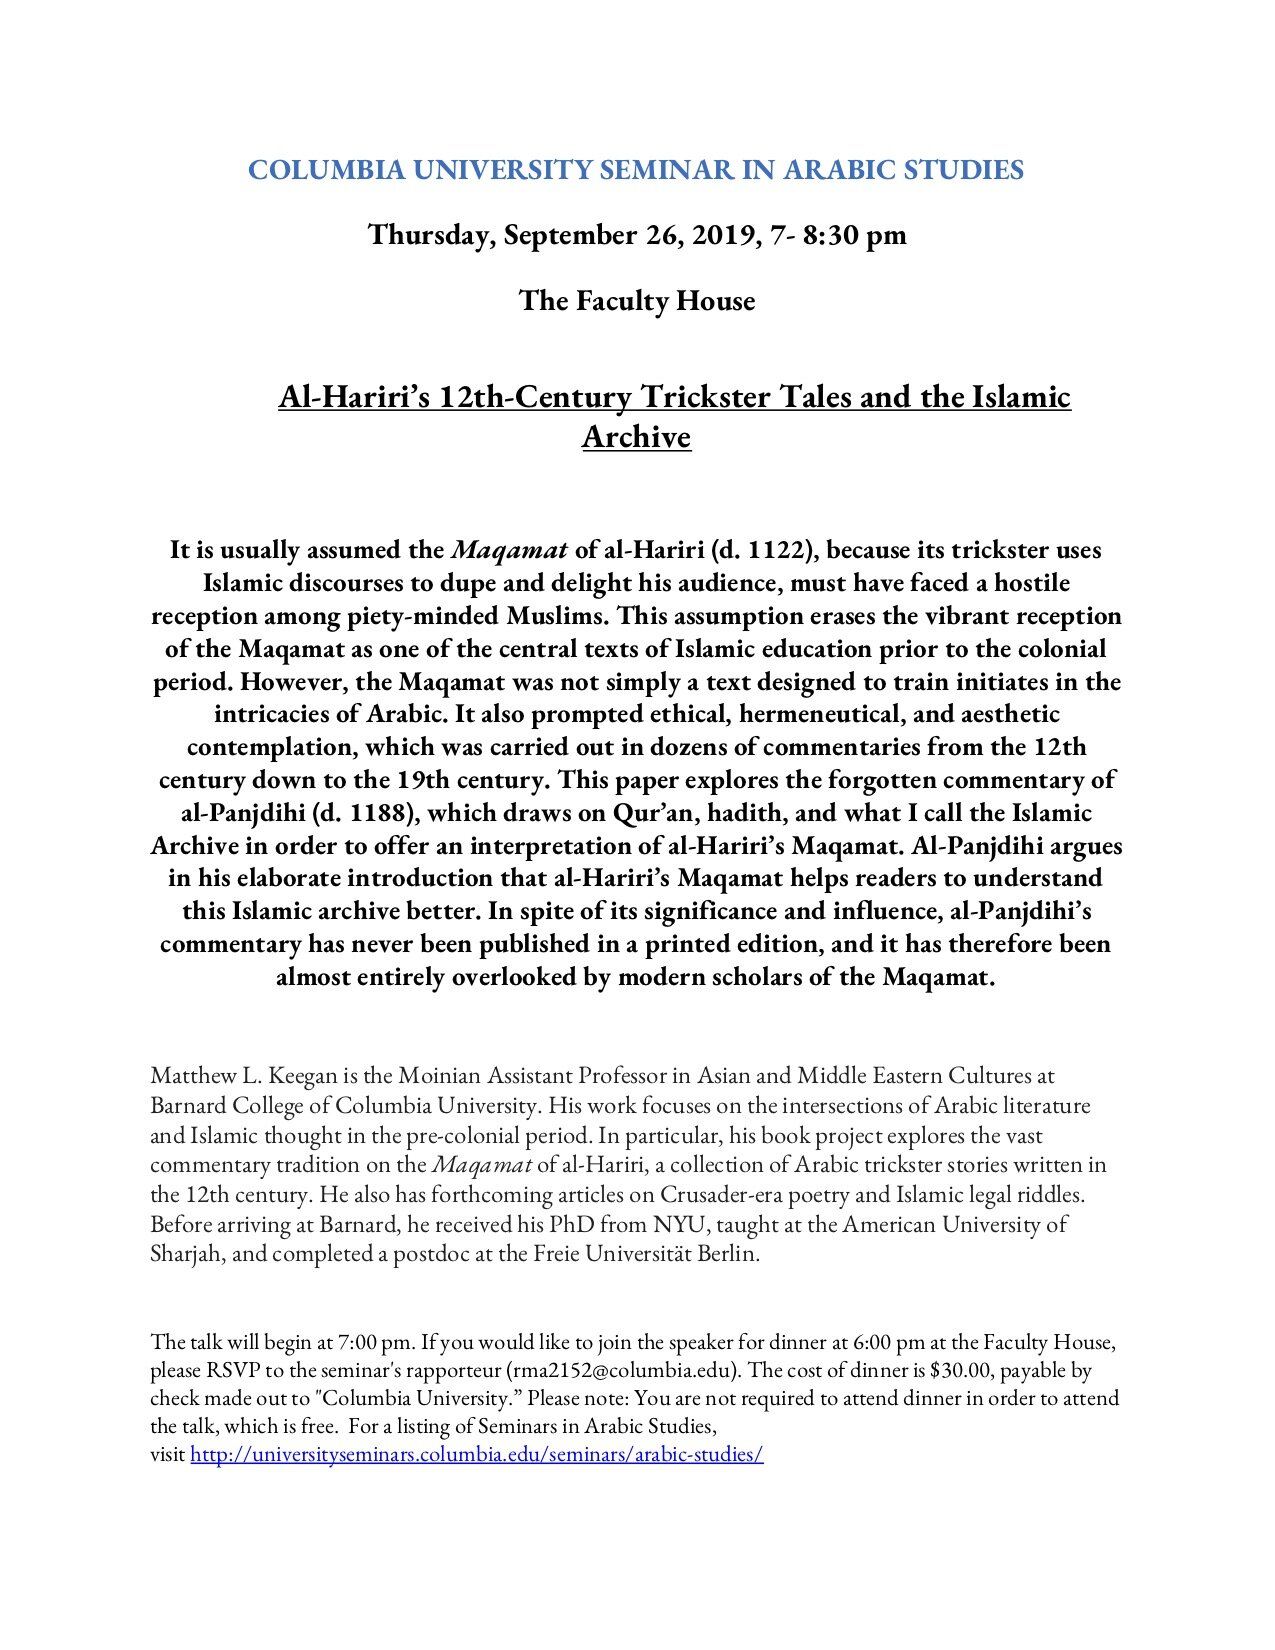 For more information and to RSVP, contact Ruwa Mohammed Alhayek   at rma2152@columbia.edu.